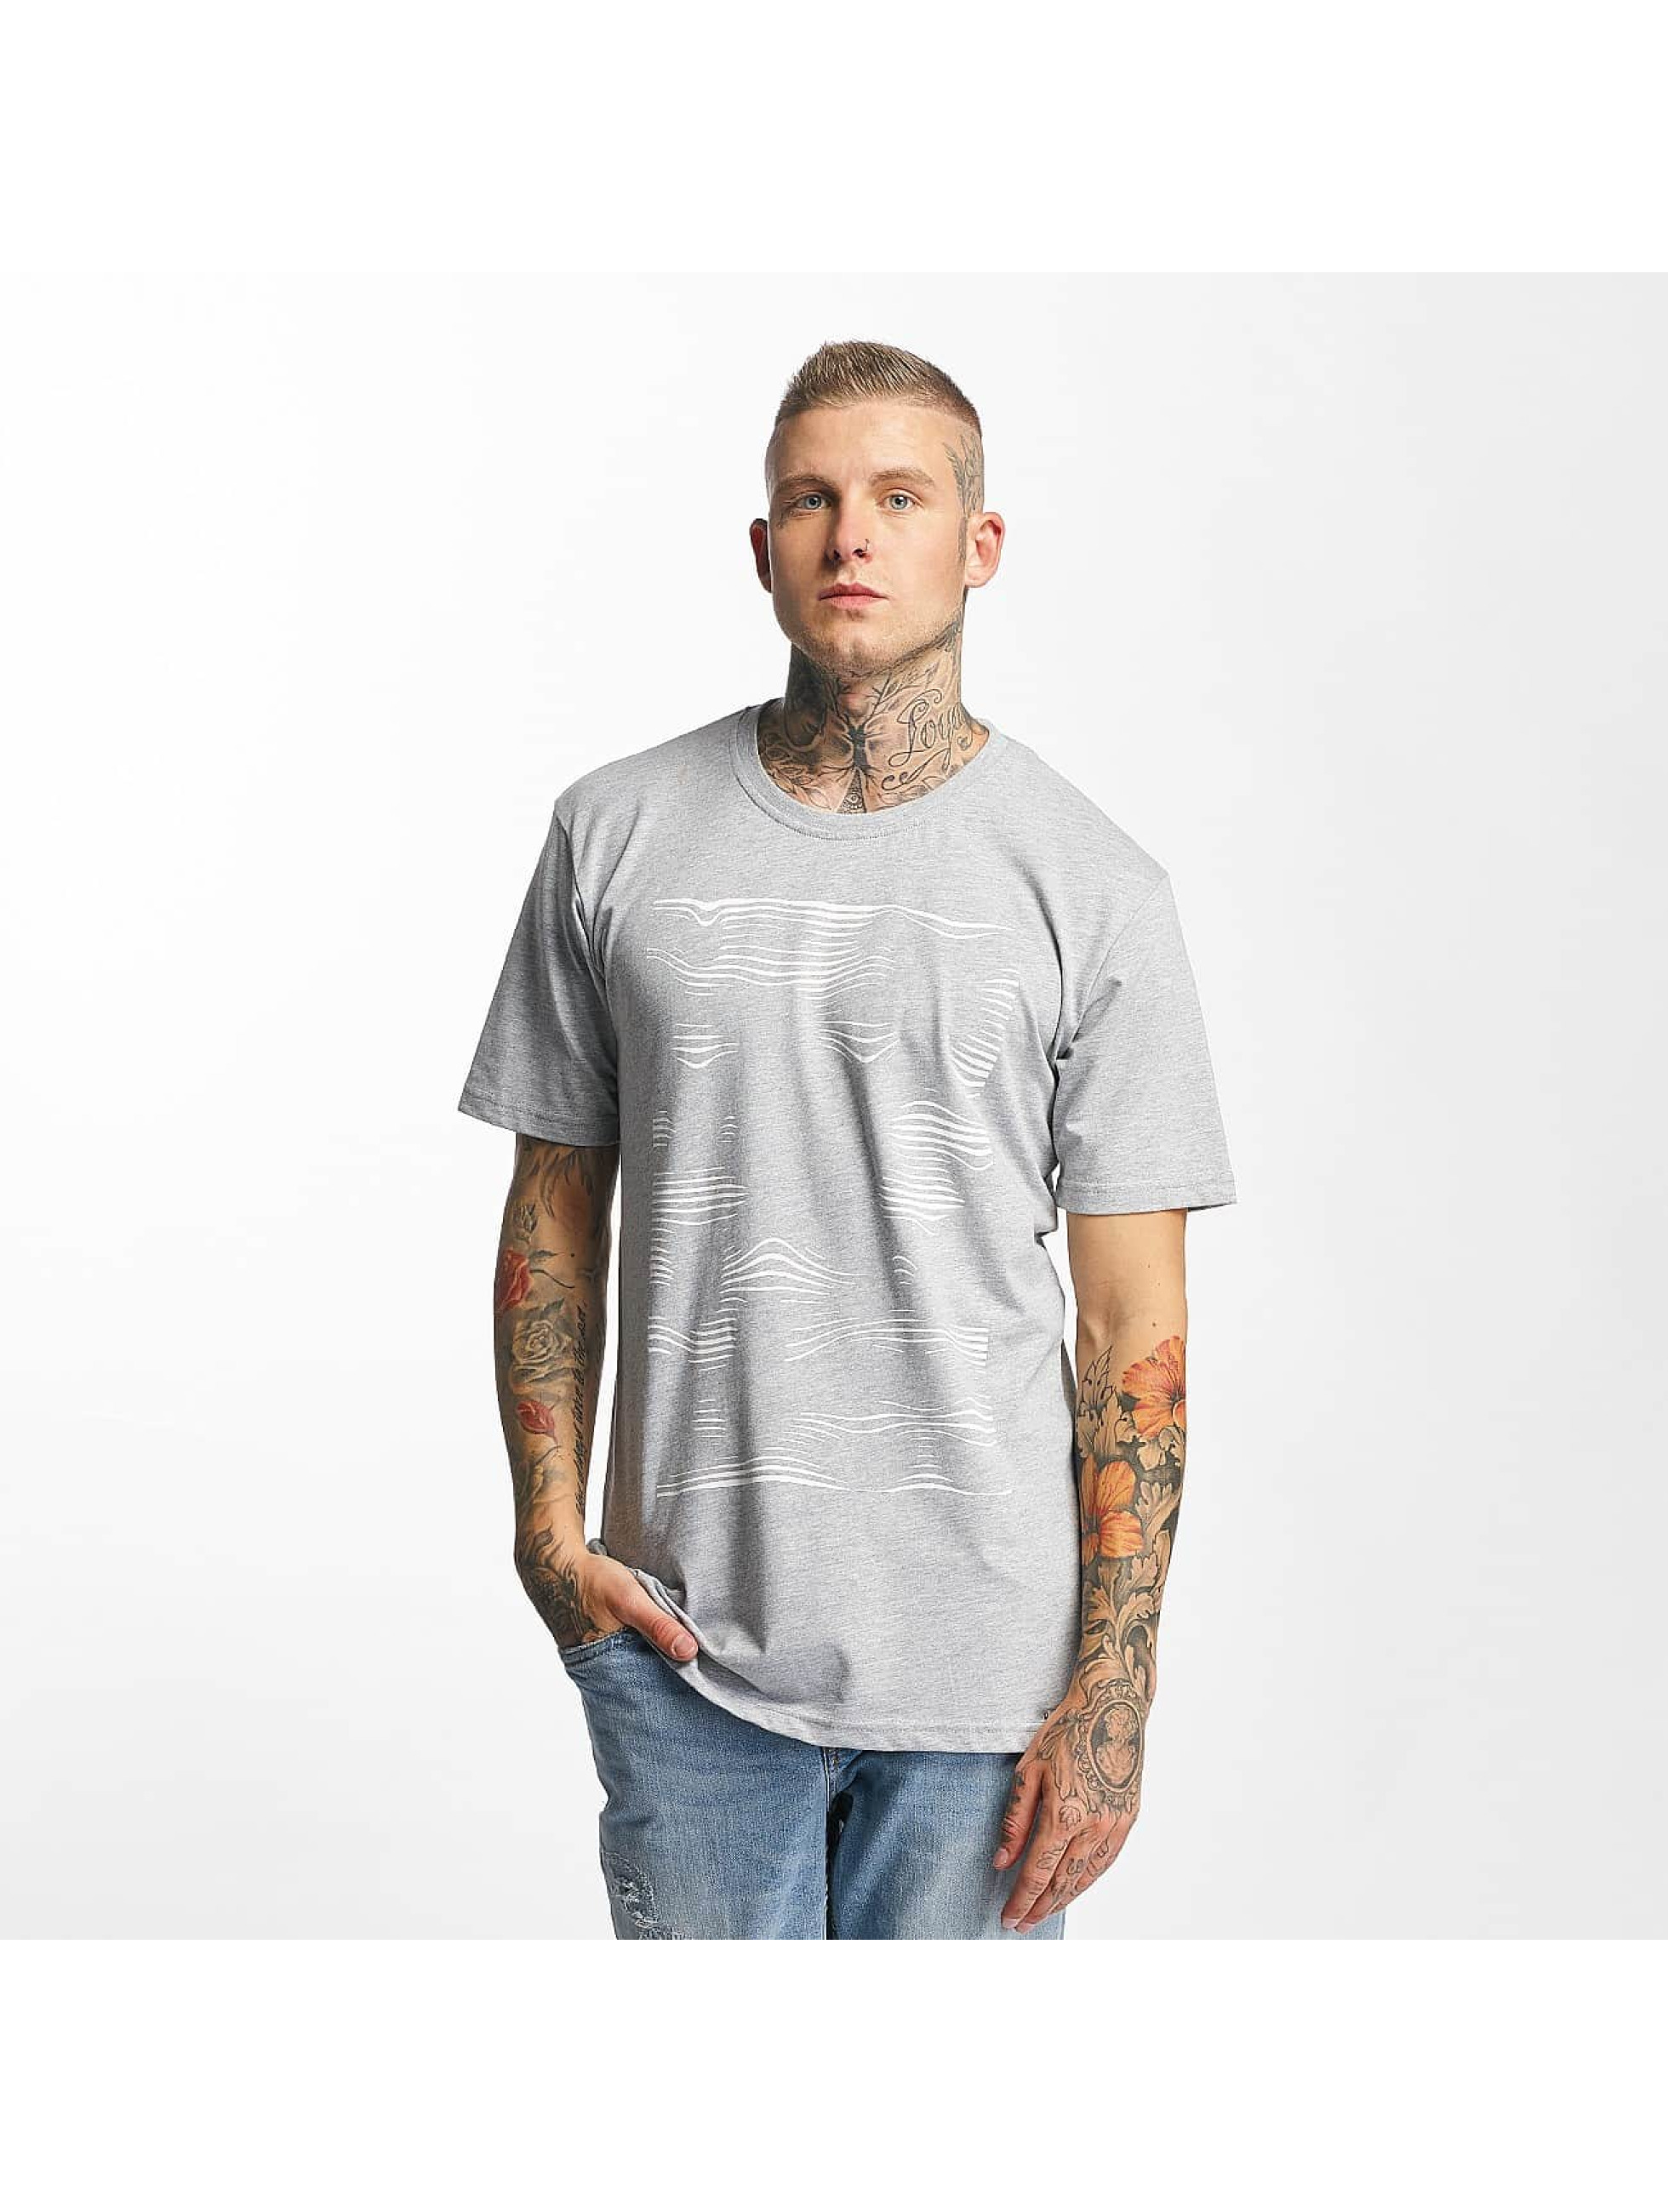 Cyprime / T-Shirt FireOpal in grey XL